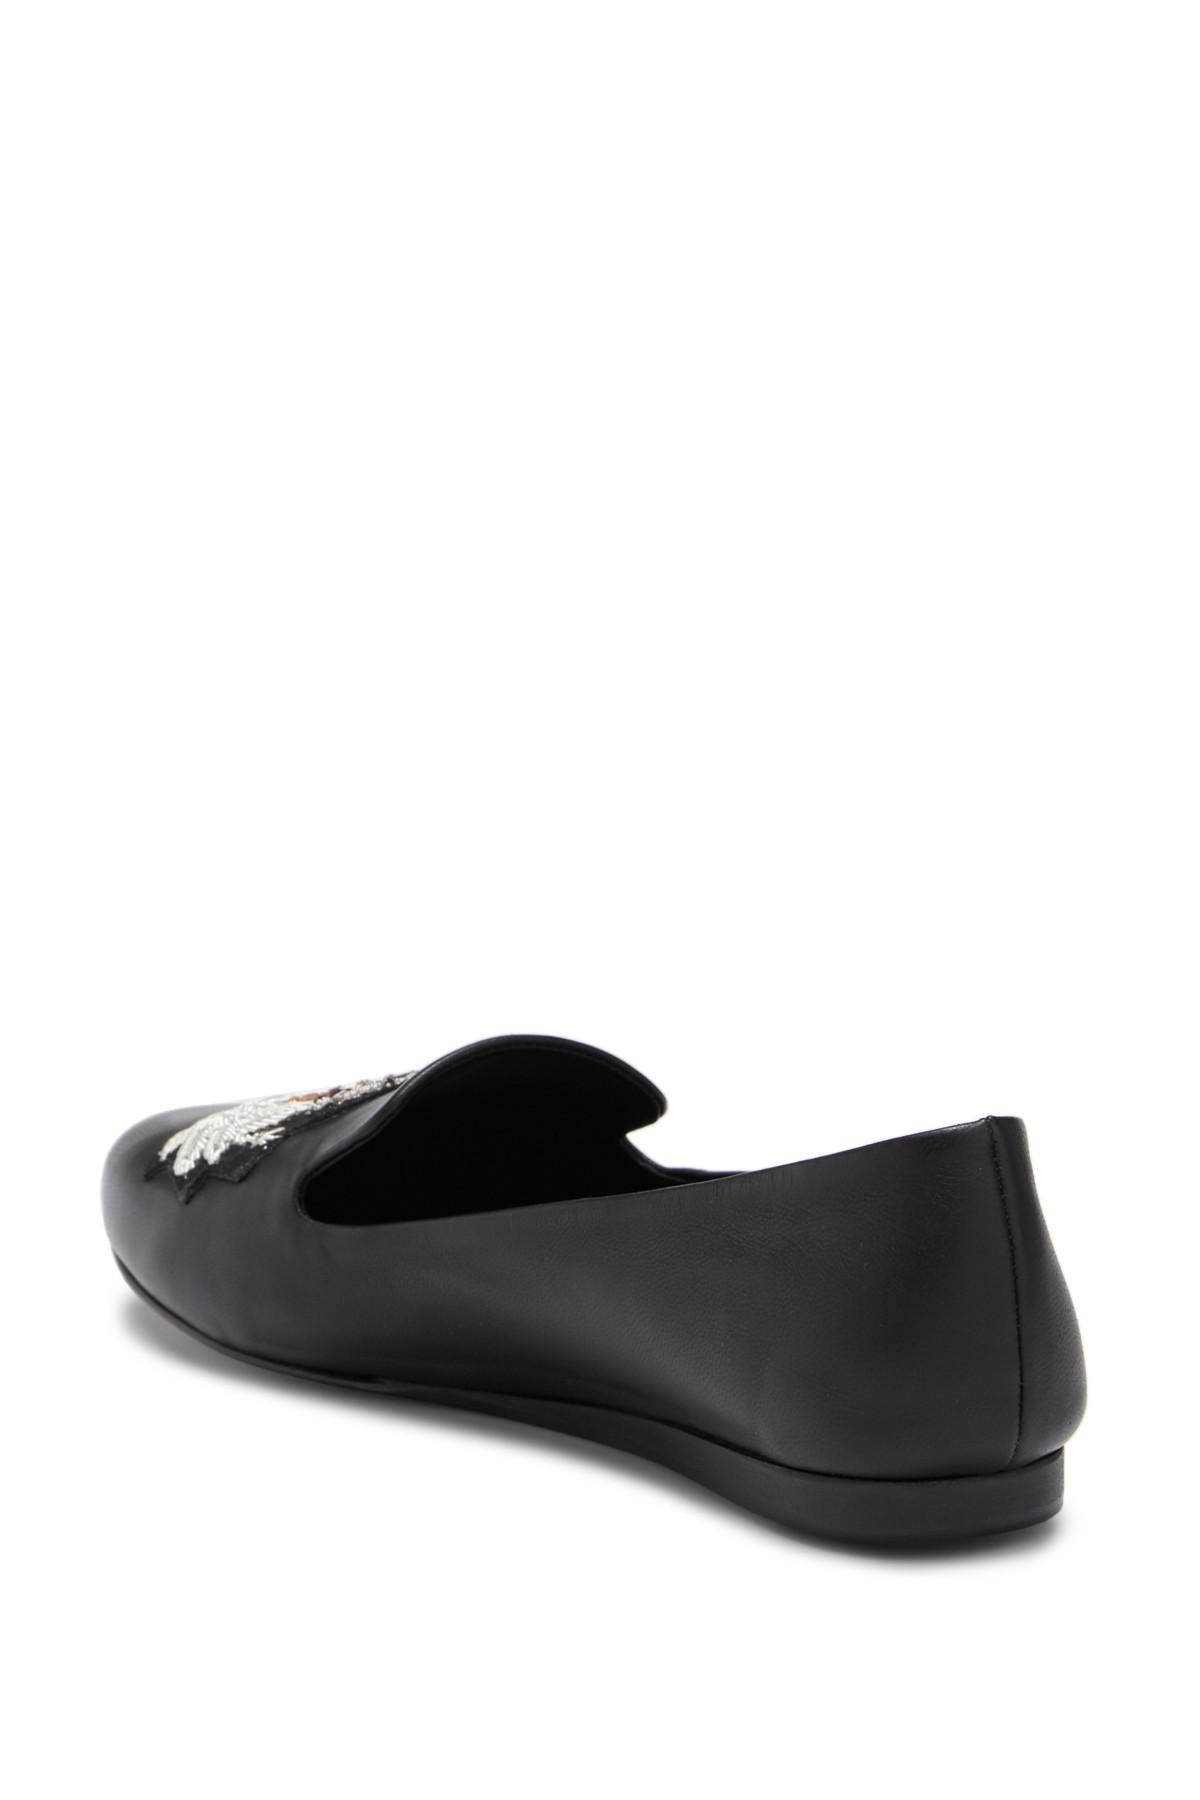 bf9c330fded Lyst - Veronica Beard Griffin Nappa Leather Slip-on Loafer With ...